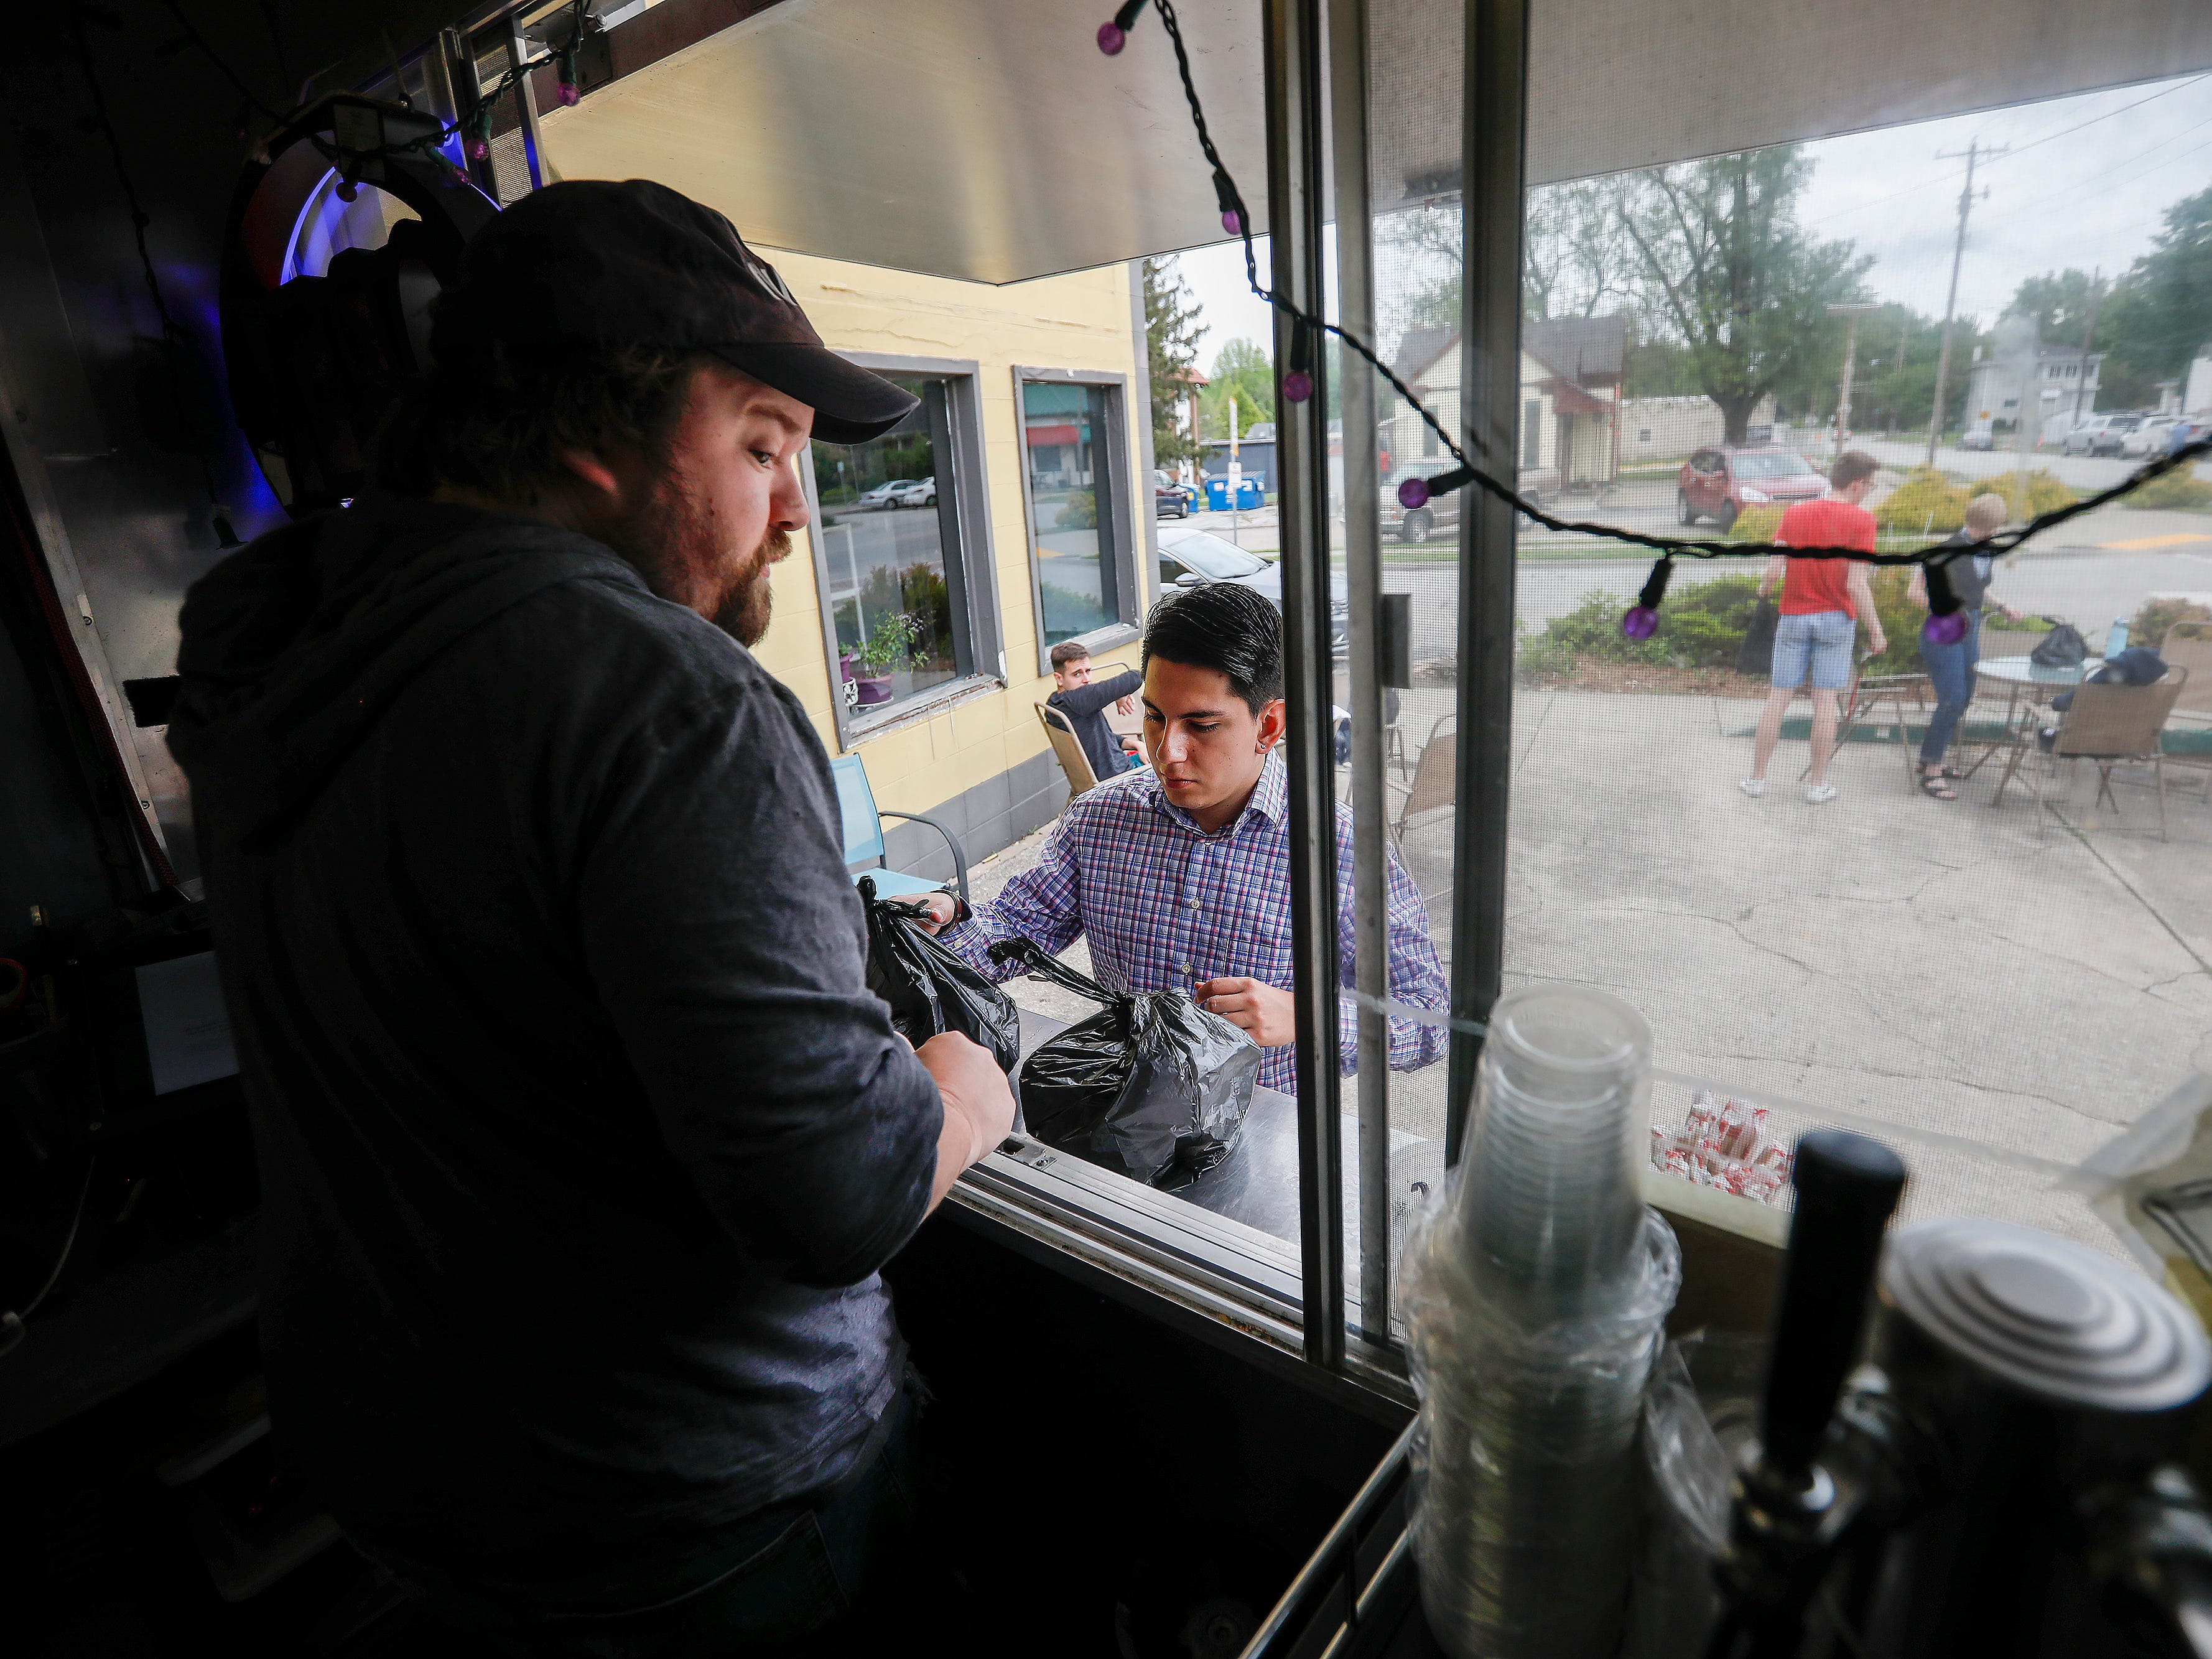 Juan Molano, center, picks up his lunch from Jeremy Spinks at Skully's Food Truck at the corner of Cherry Street and Pickwick Avenue on Wednesday, May 1, 2019. Skully's will be moving inside into the former Josh Mitchell Art Gallery building.